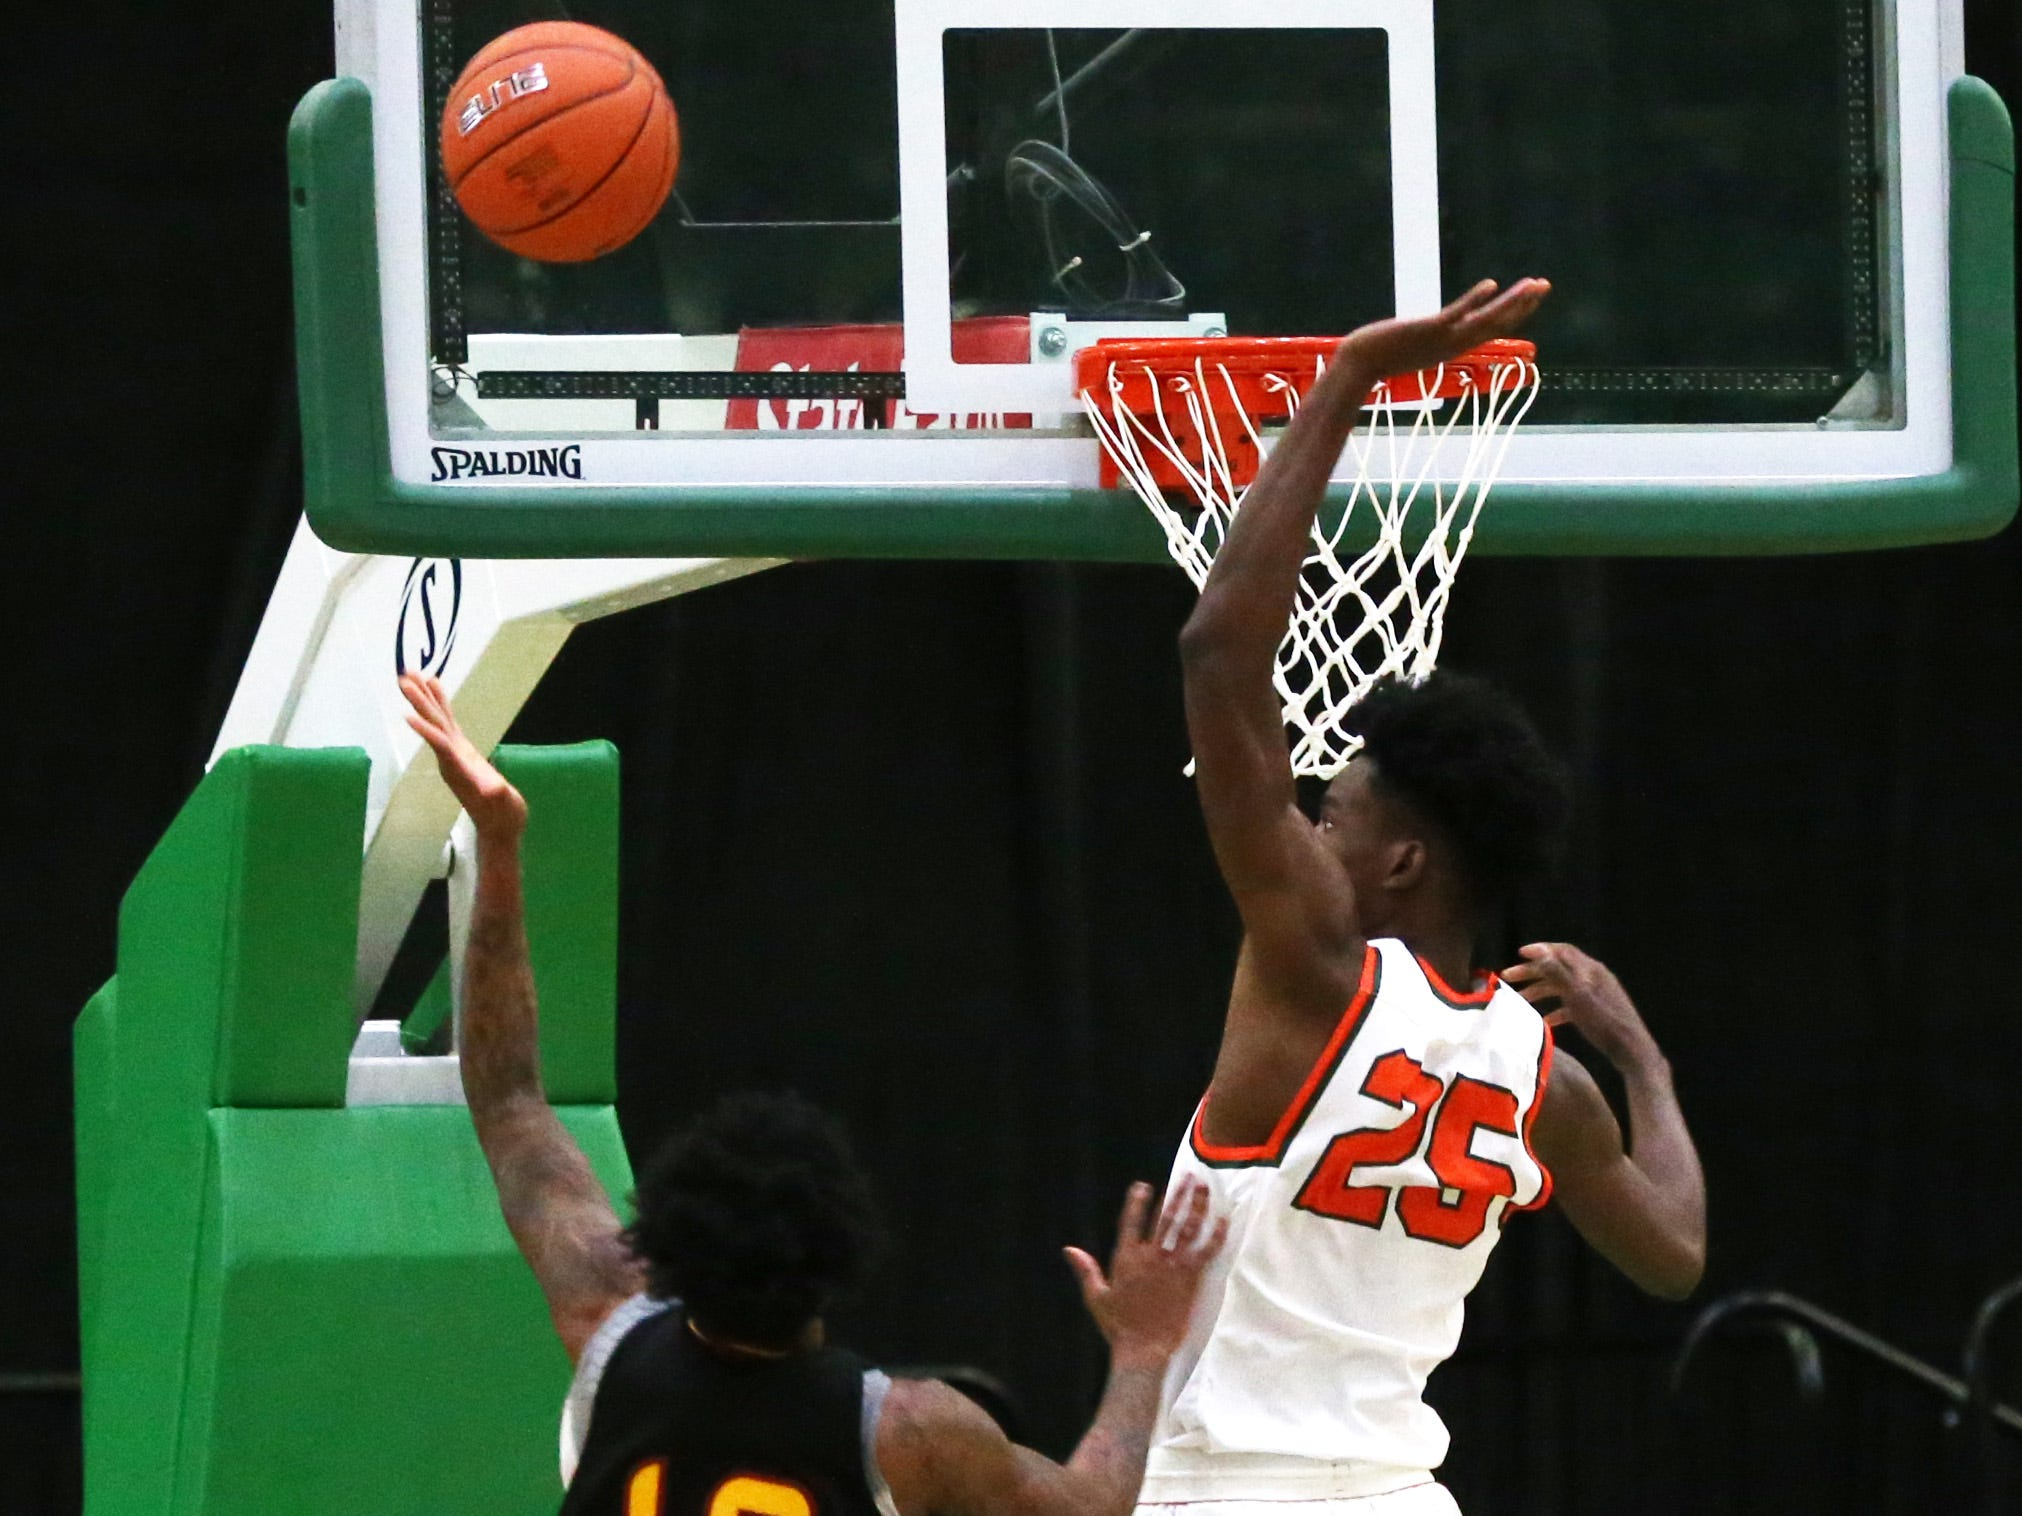 Florida A&M Rattlers center DJ Jones (25) blocks a Tuskegee player as the FAMU Rattlers take on the Tuskegee Golden Tigers in their first home game of the season in the Lawson Center, Saturday, Nov. 10, 2018.